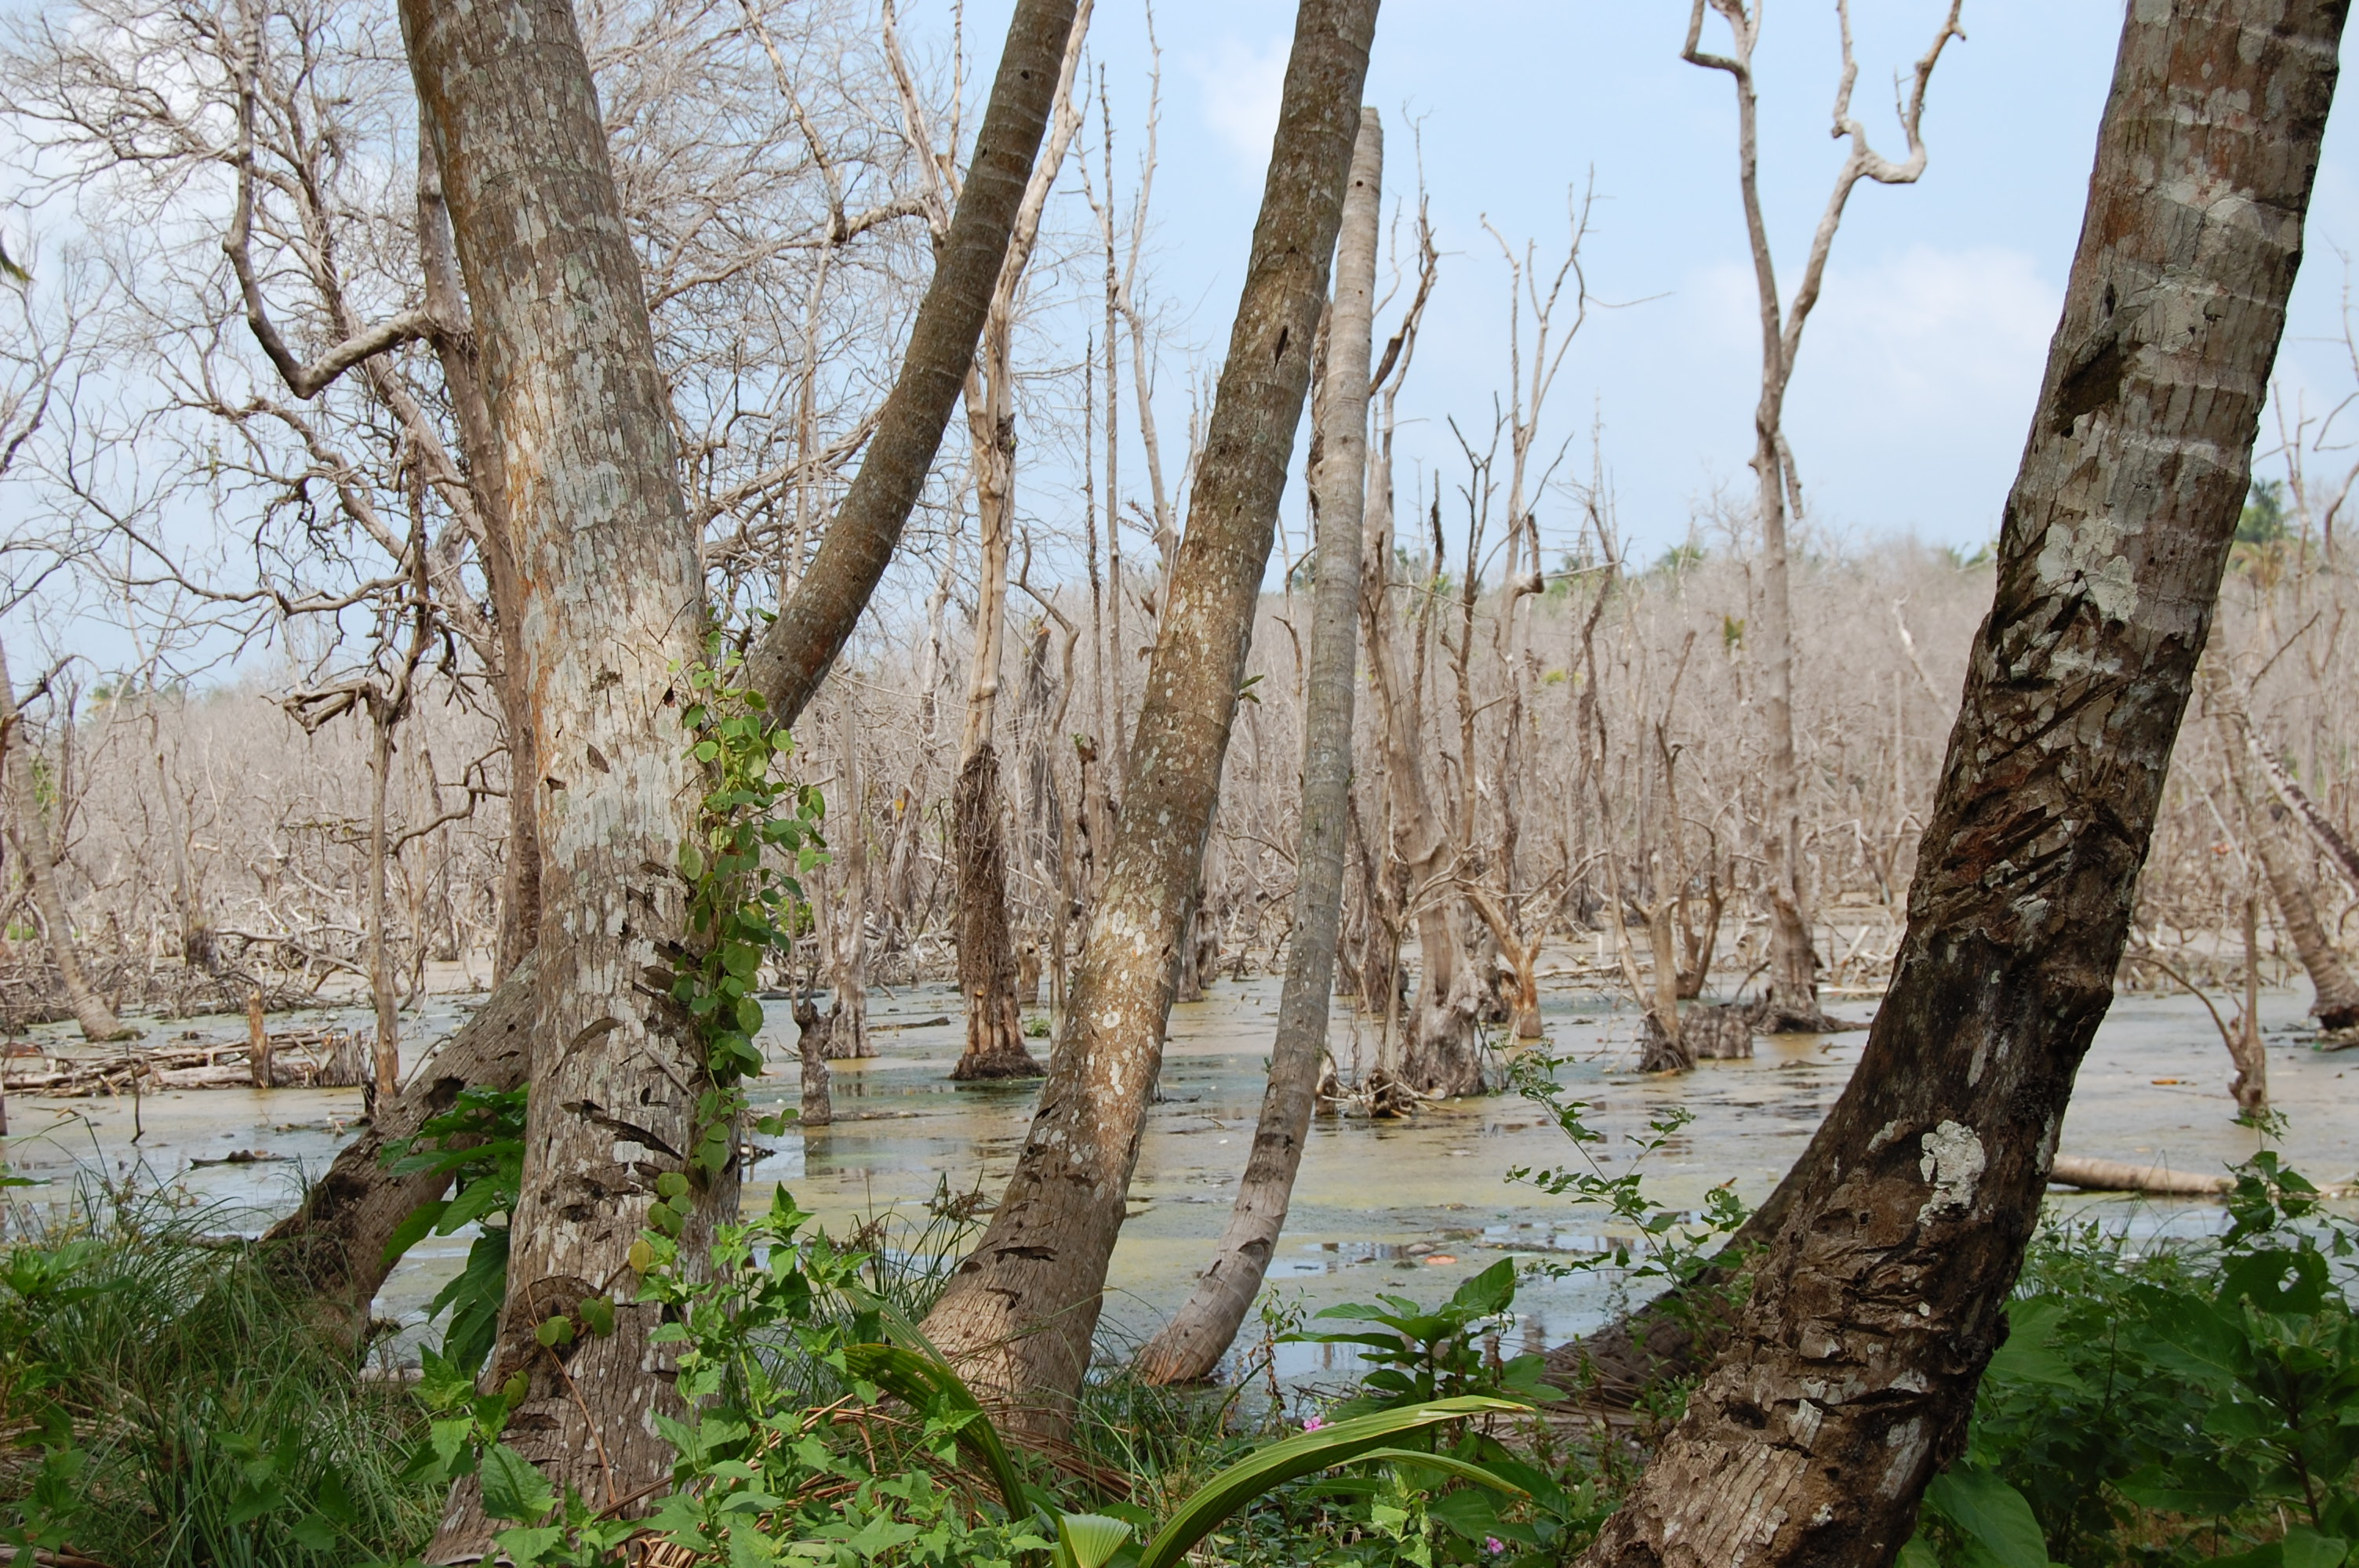 A wilting mangrove forest in Car Nicobar, destroyed by the Asian Tsunami in  2004. Credit: Malini Shankar/IPS